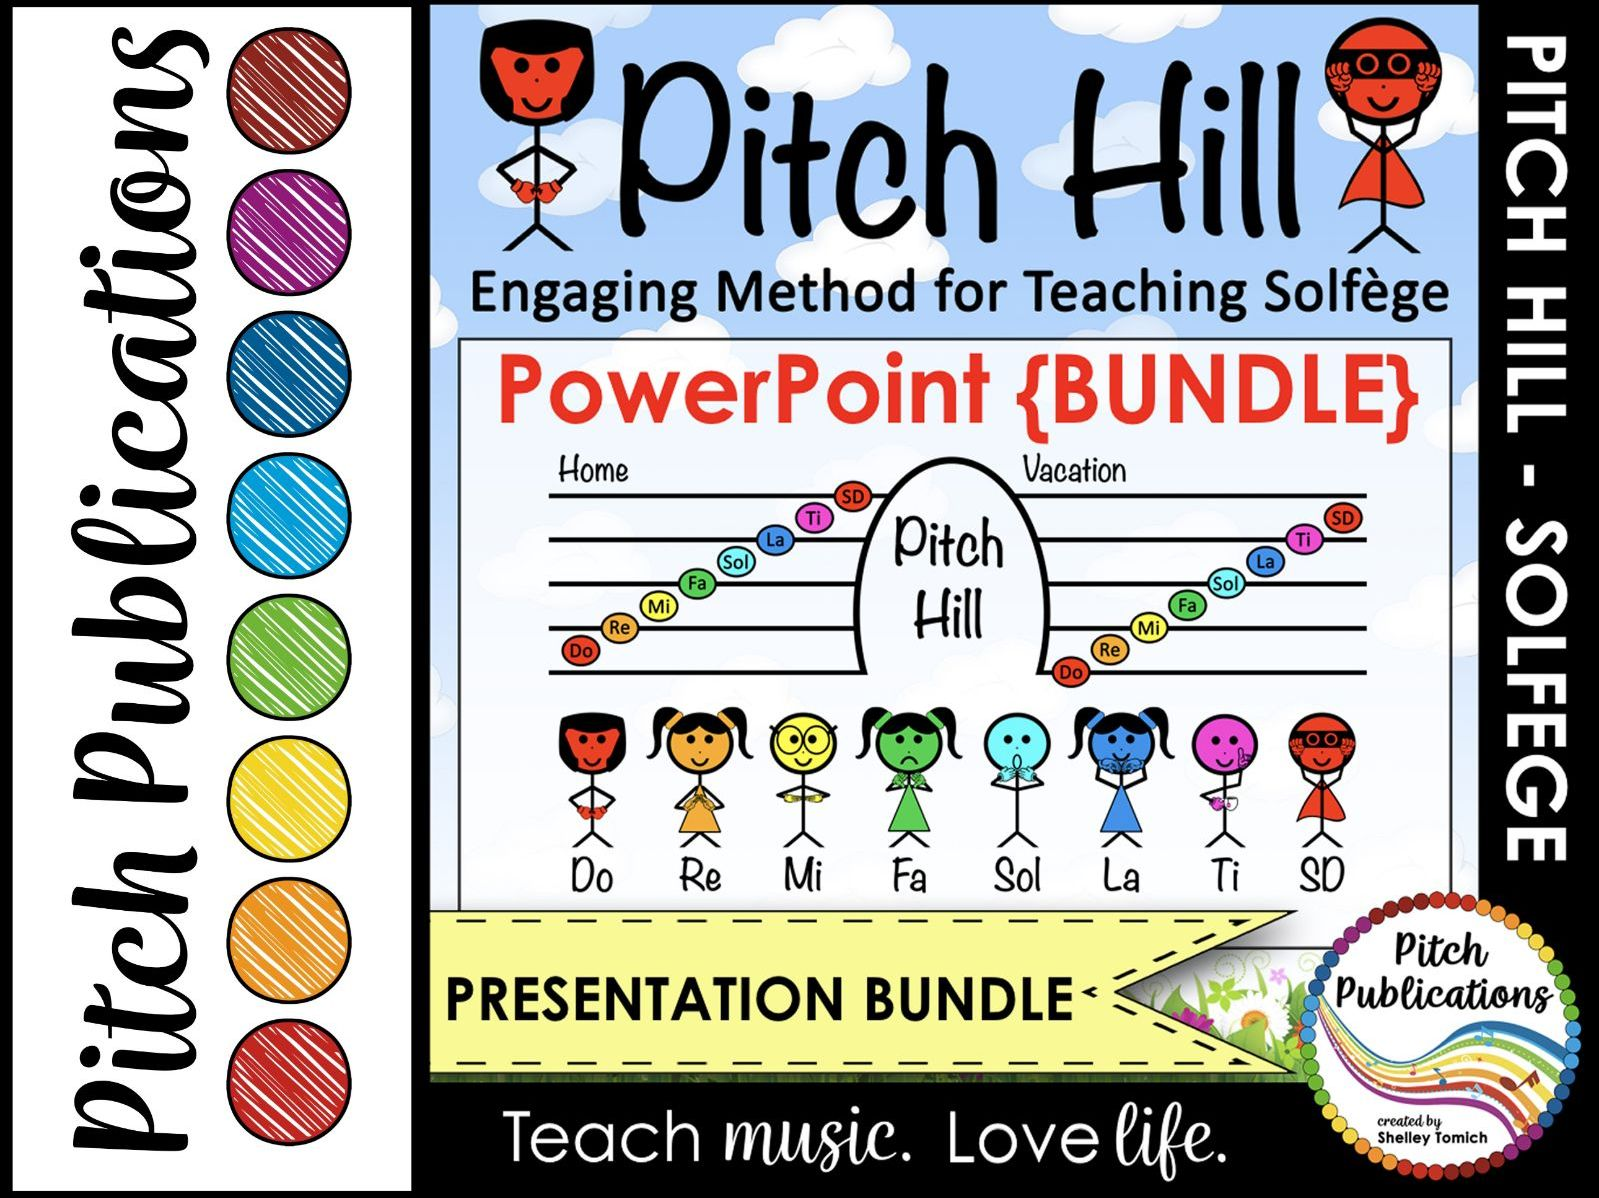 Pitch Hill: PowerPoint {BUNDLE} - Practice Do Re Mi Fa Sol La Ti Do Solfege (So)